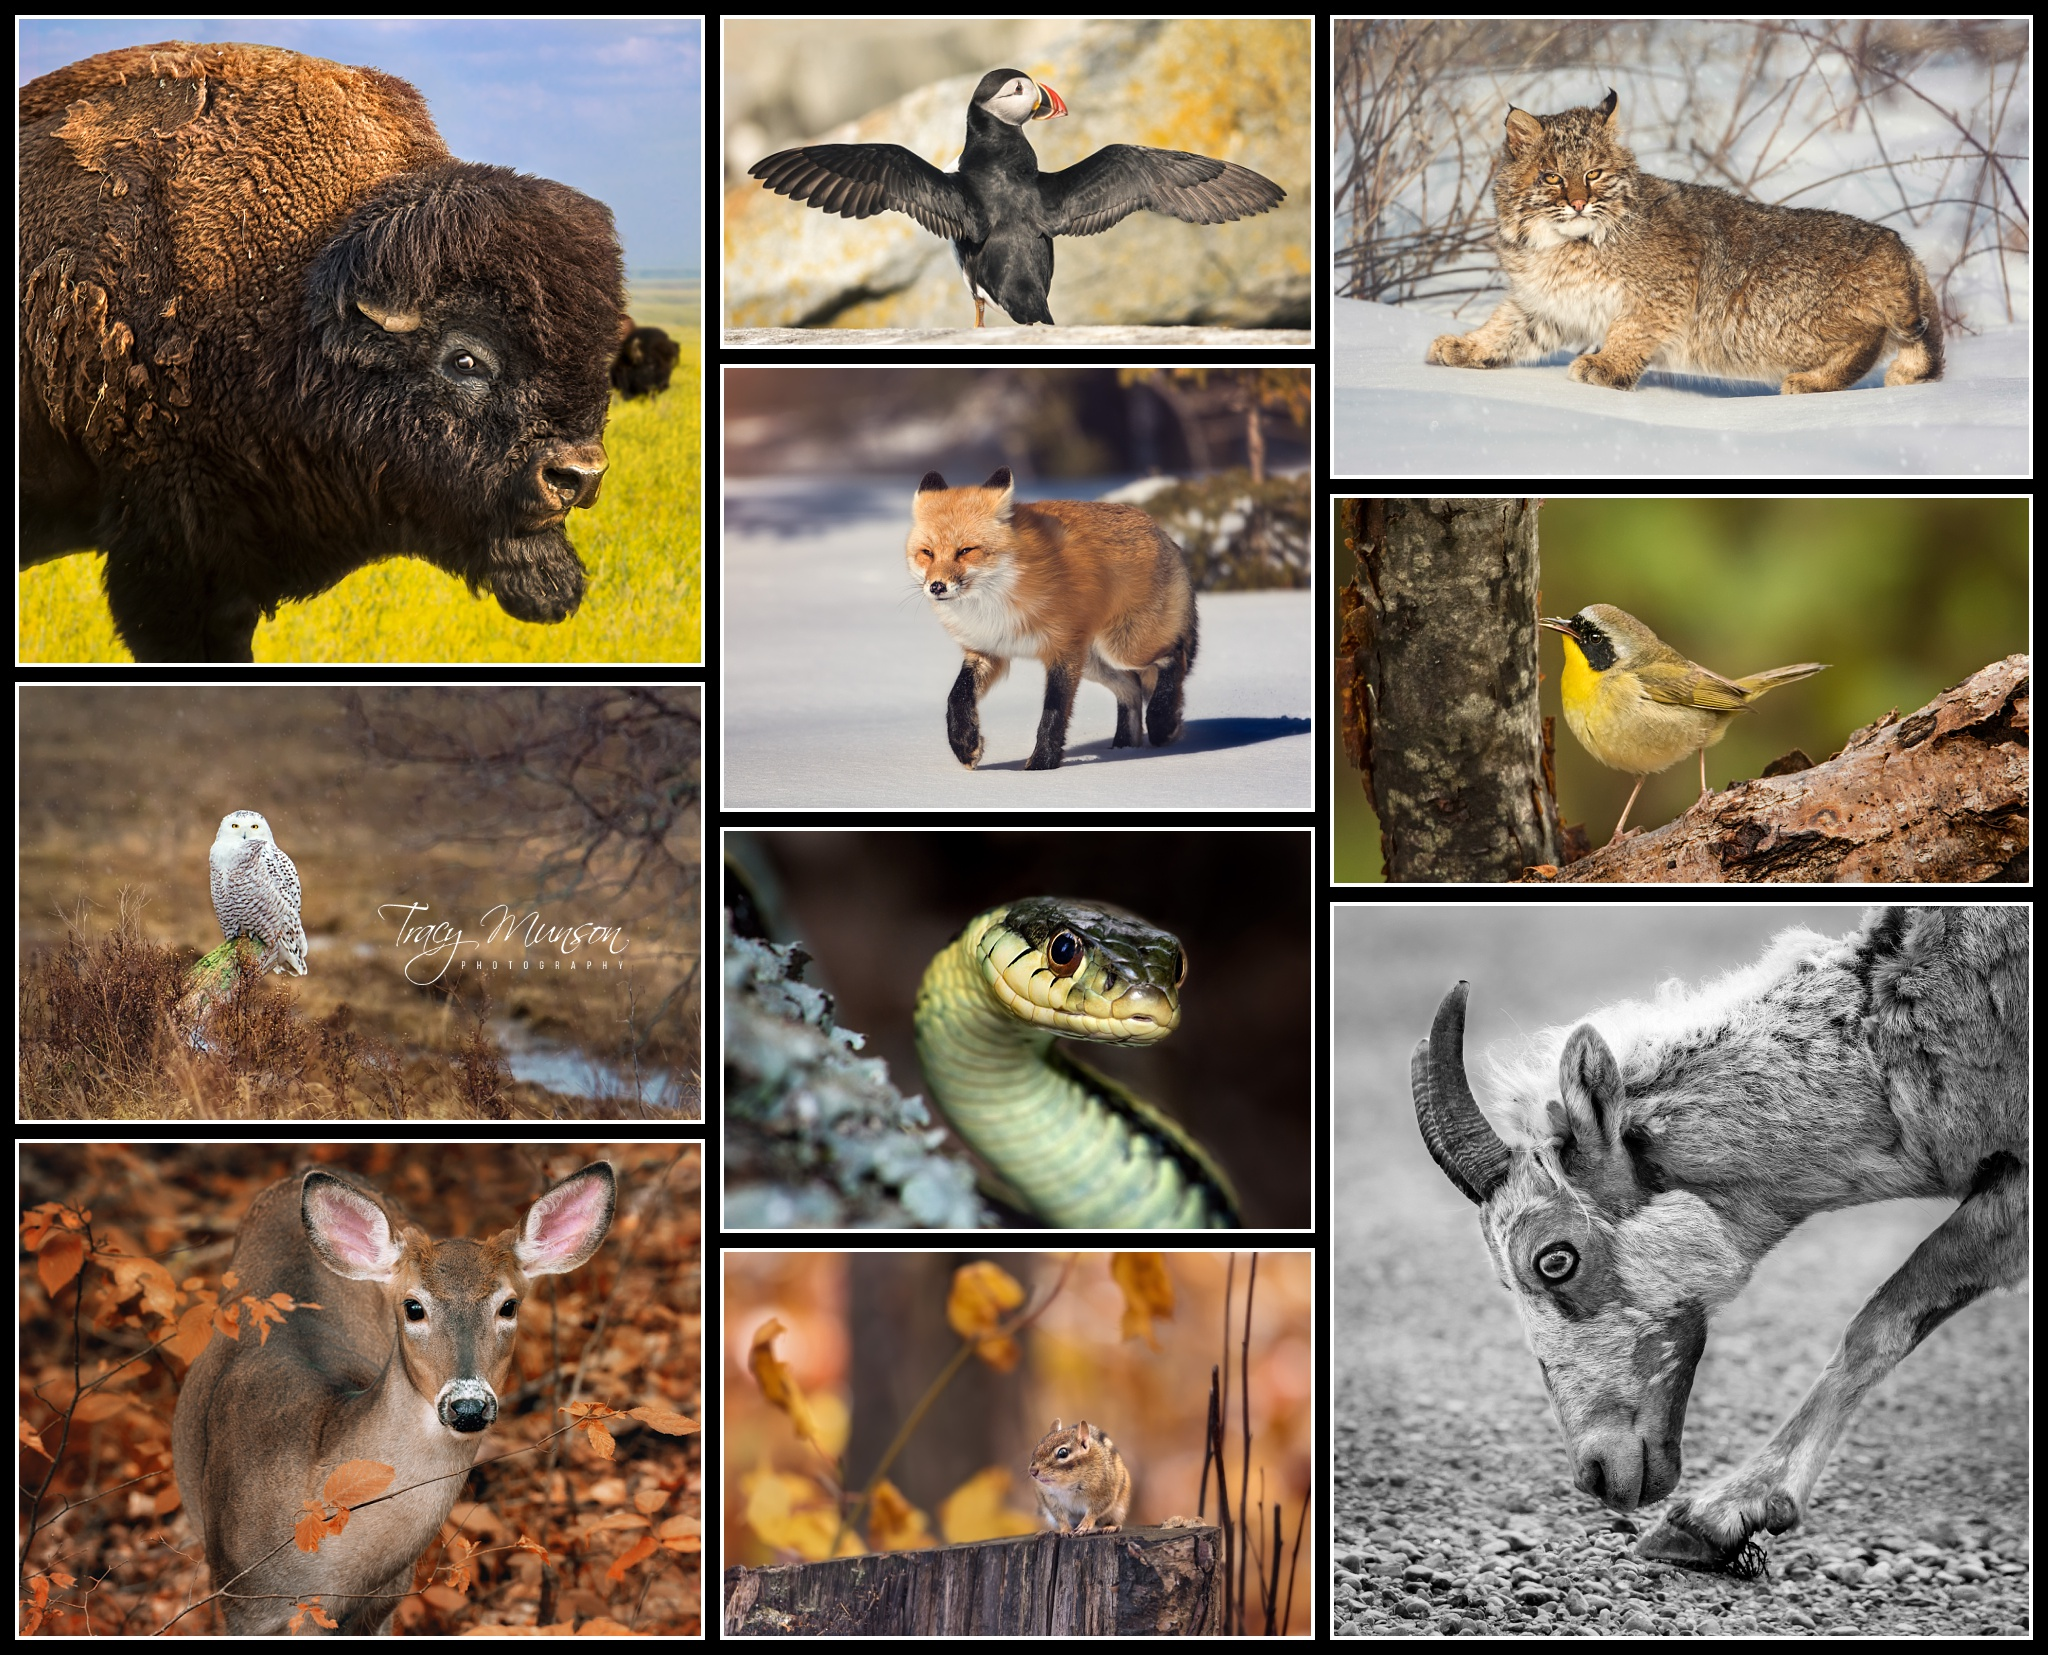 These are the 10 images that made up my successful Wildlife Accreditation submission.